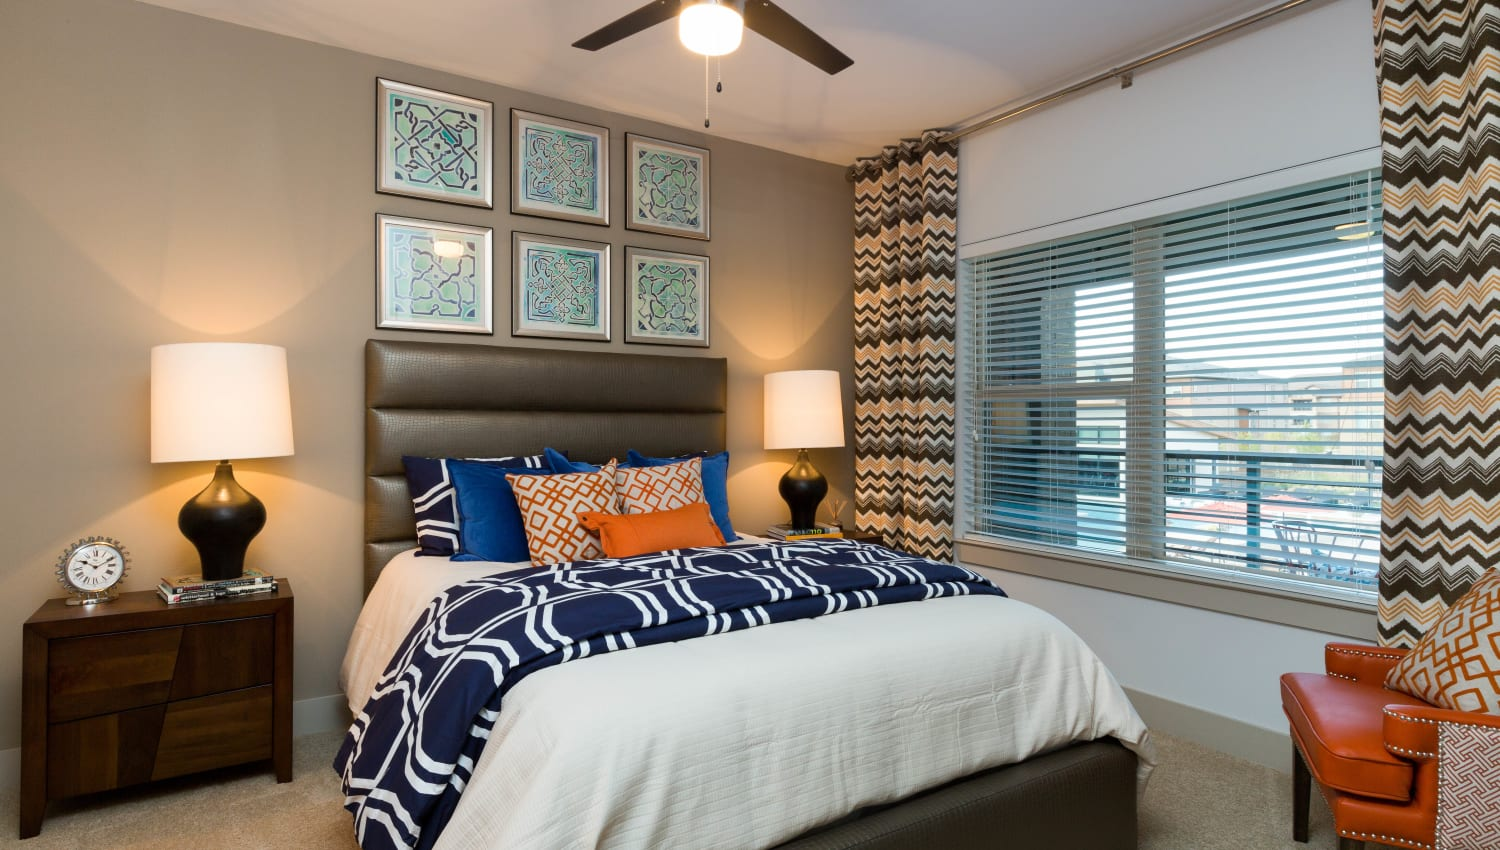 Large bay windows and colorful decor in a model home's bedroom at The Davis in Fort Worth, Texas